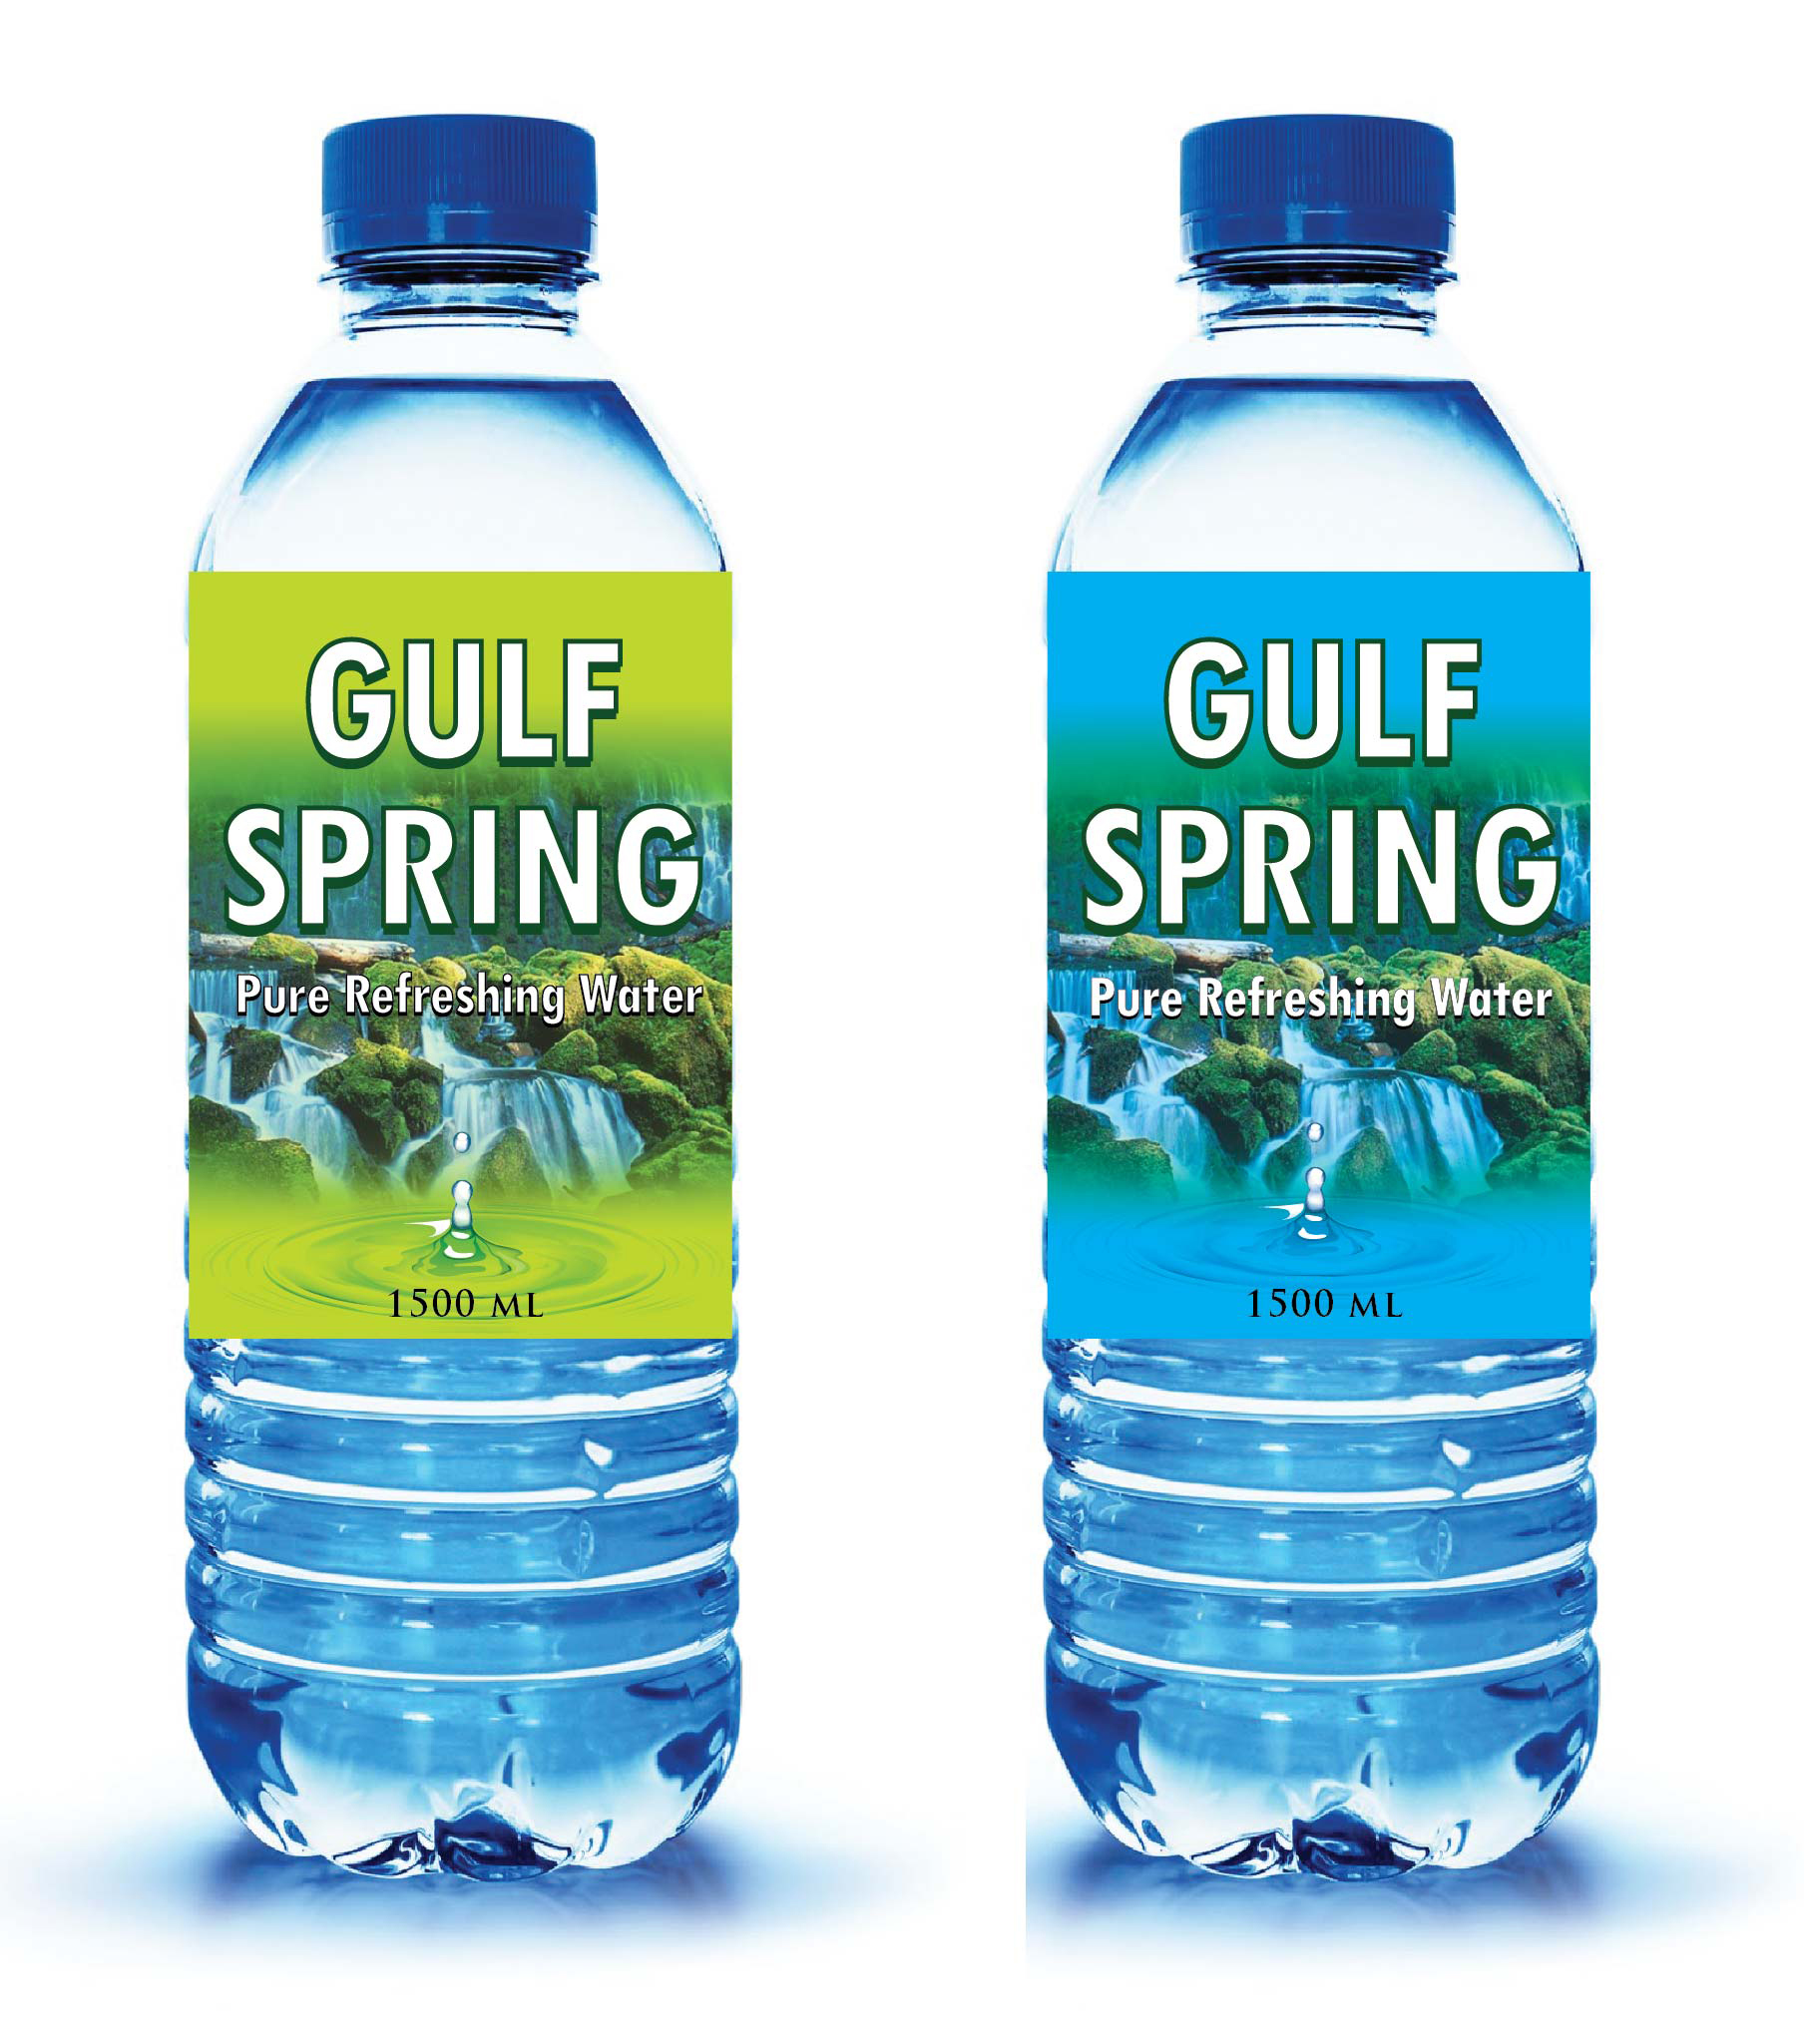 Logo Design by Mahida Kirit Chandrasinh - Entry No. 47 in the Logo Design Contest Inspiring Logo Design for Gulf Spring.